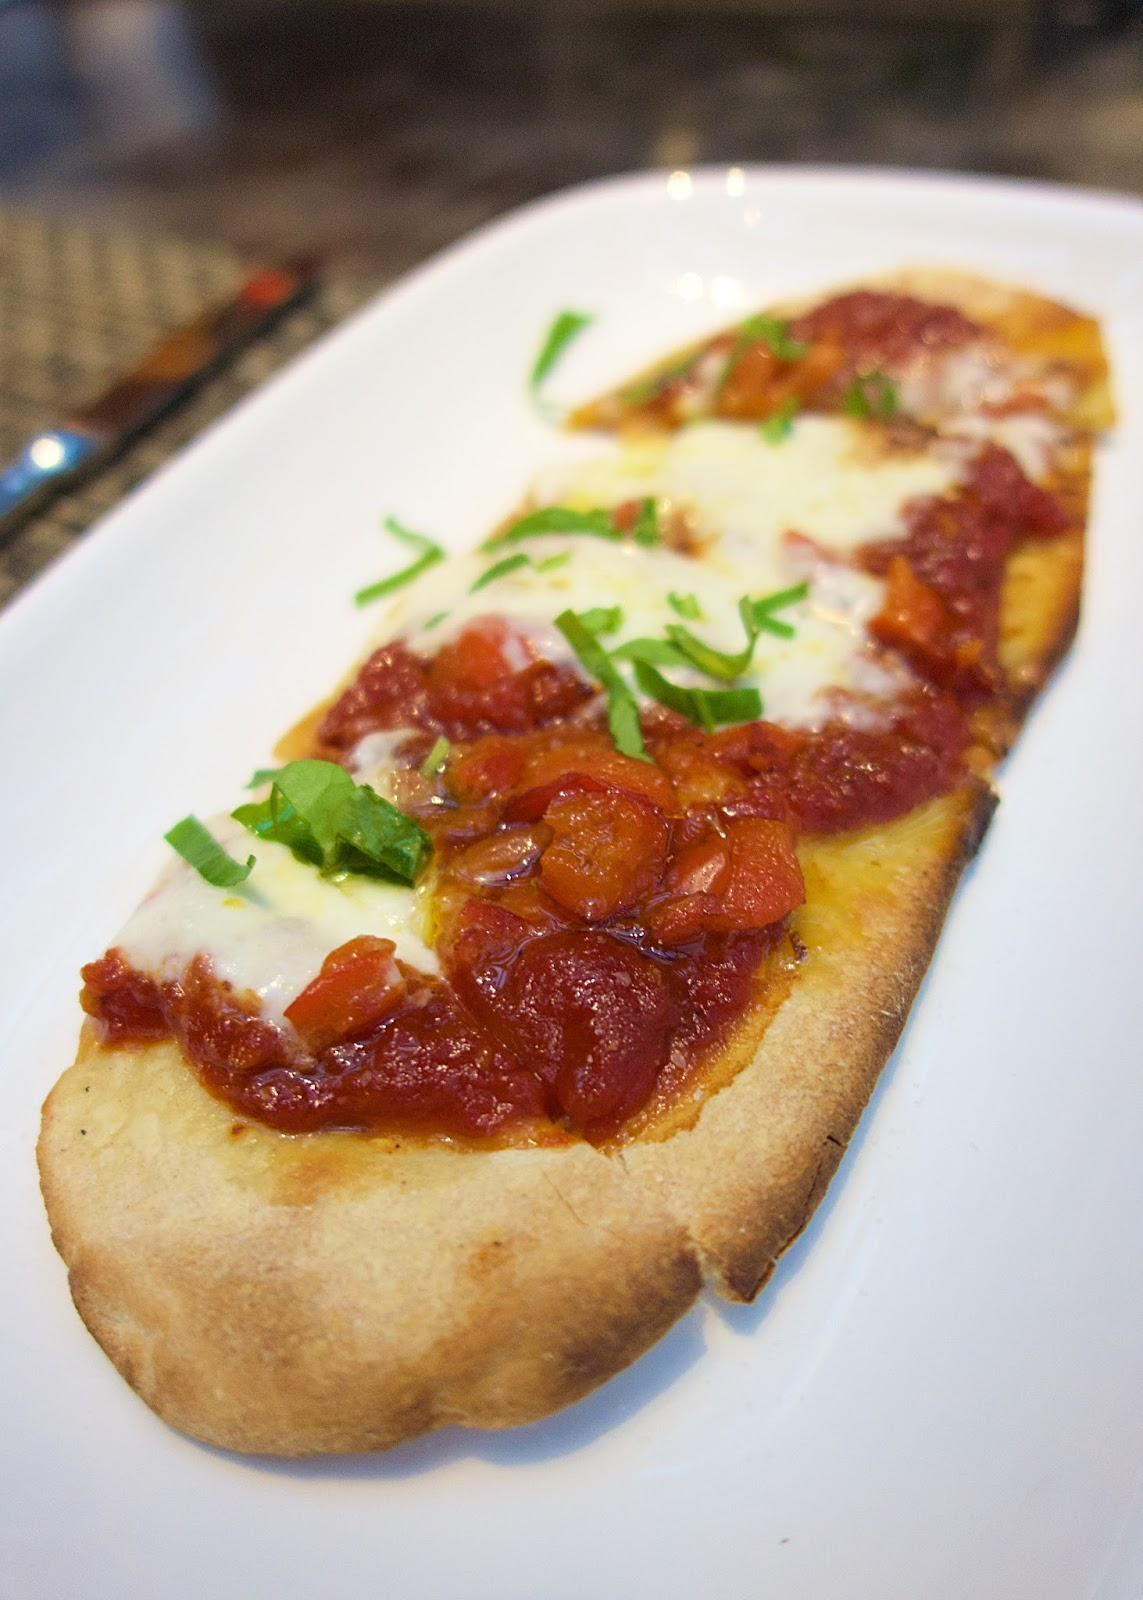 Tom Colicchio's Heritage Steak - Tomato Flatbread with Burrata Cheese